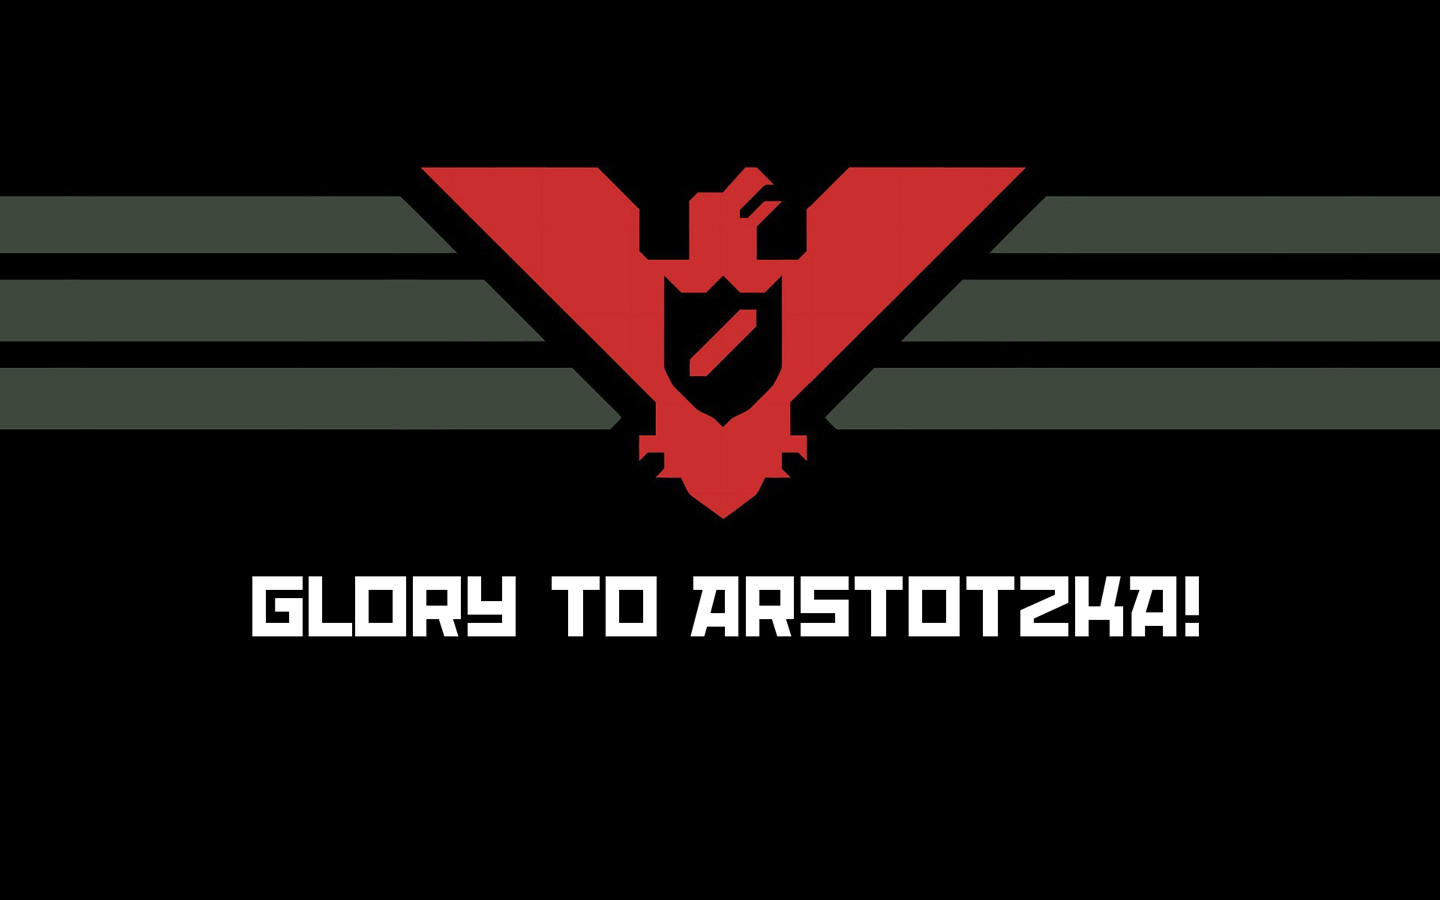 Free Papers, Please Wallpaper in 1440x900